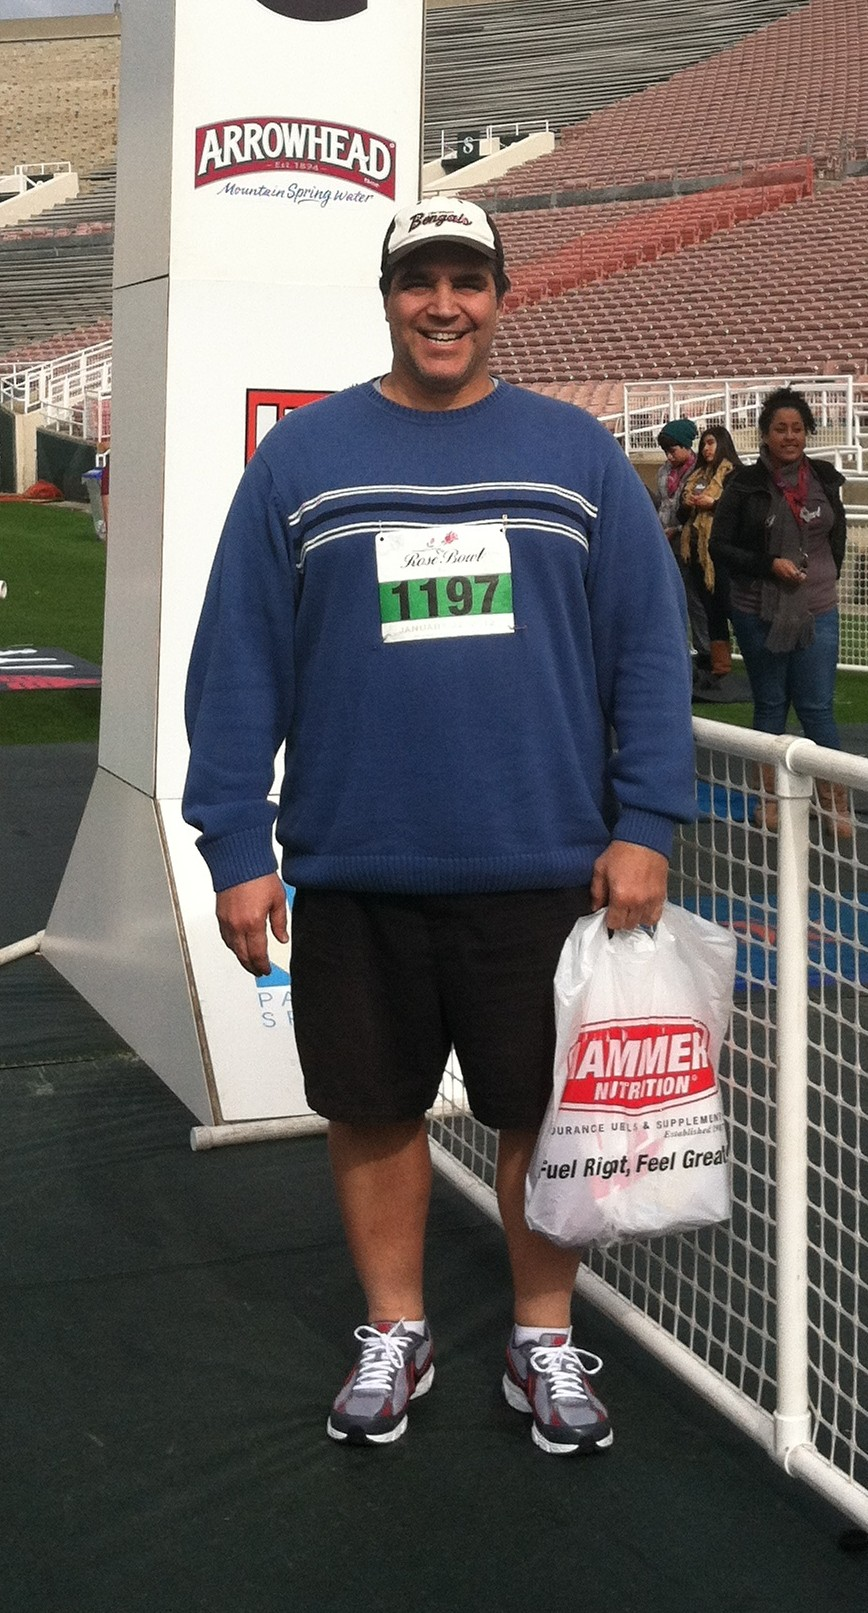 my Daddy at the finish of the Rose Bowl 5k - Pasadena, CA - January 22, 2012